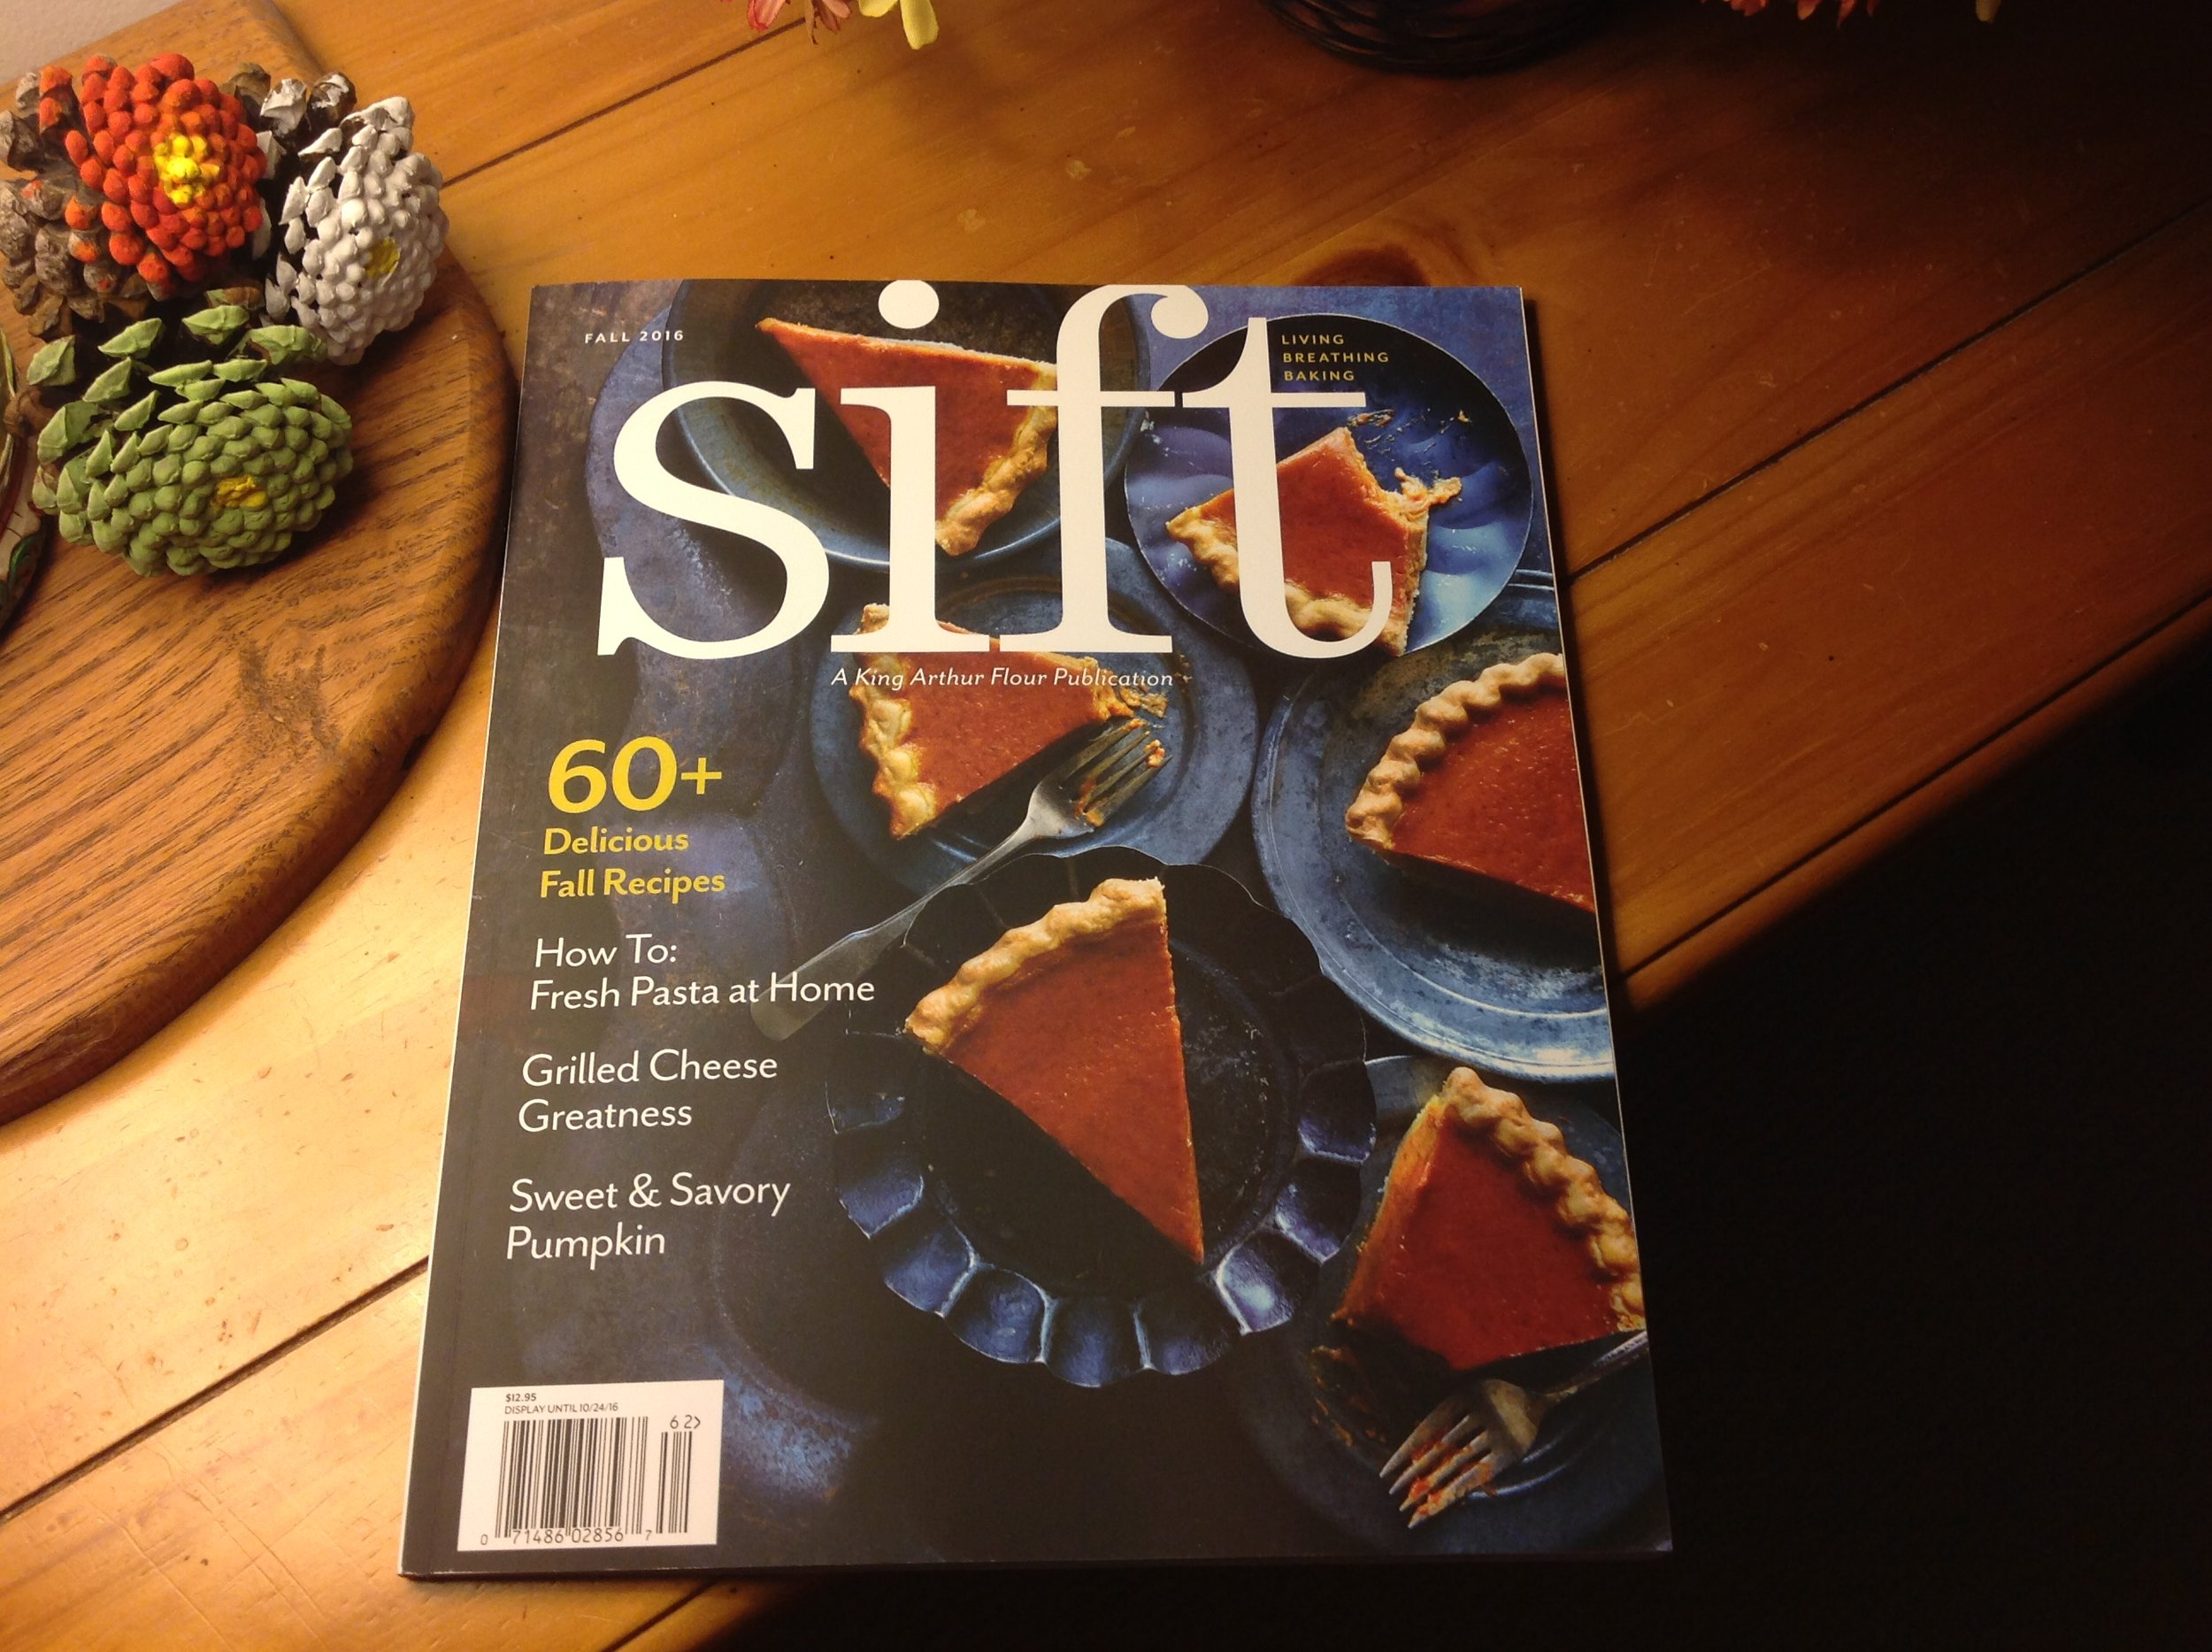 King Arthur Flour's Fall 2016 Edition of Sift Magazine